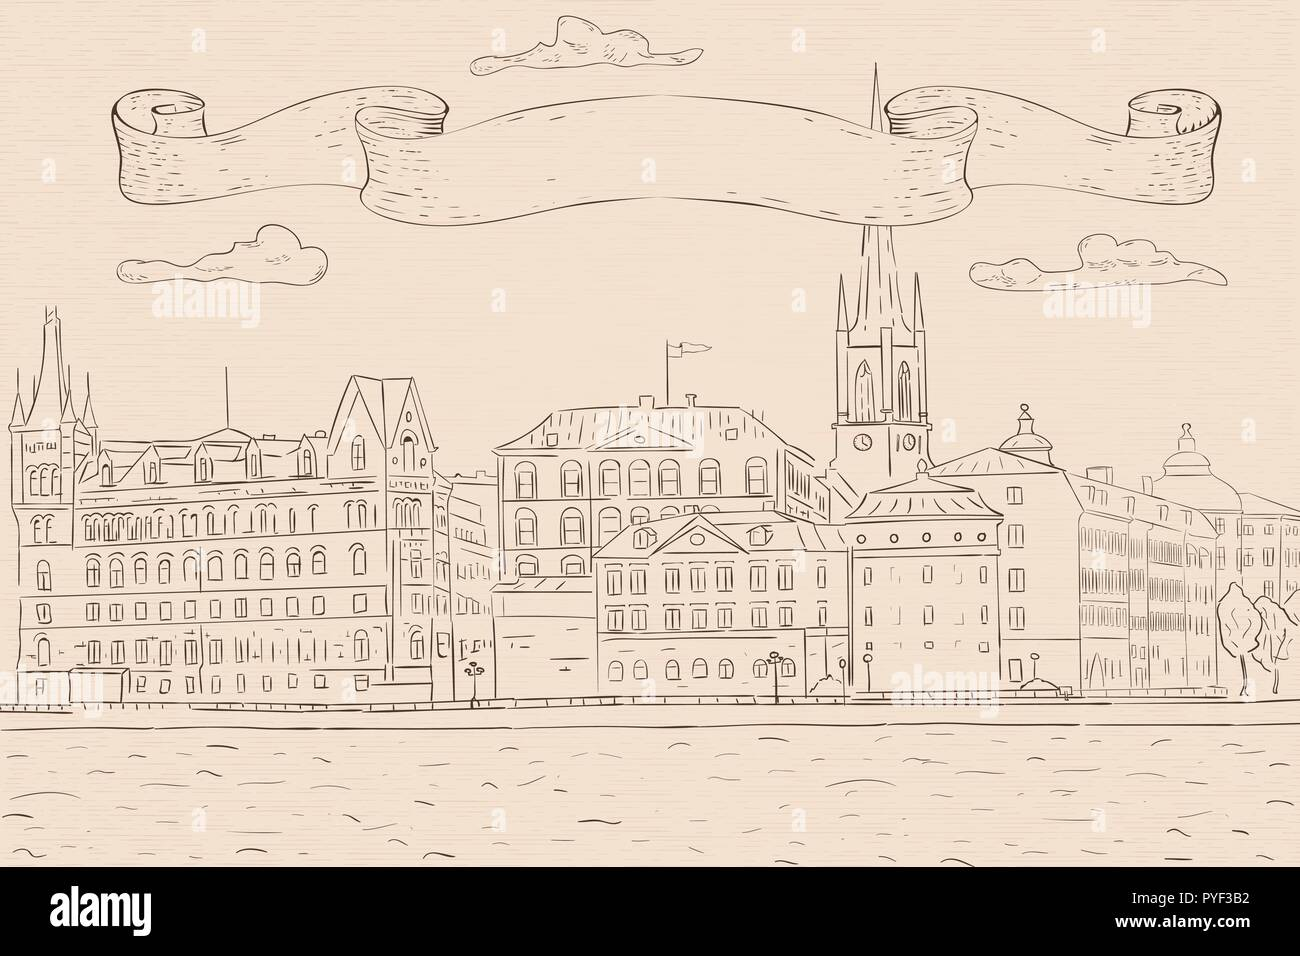 Old city of Stockholm, lake view. Hand drawn sketch. Outline drawing on beige background - Stock Vector